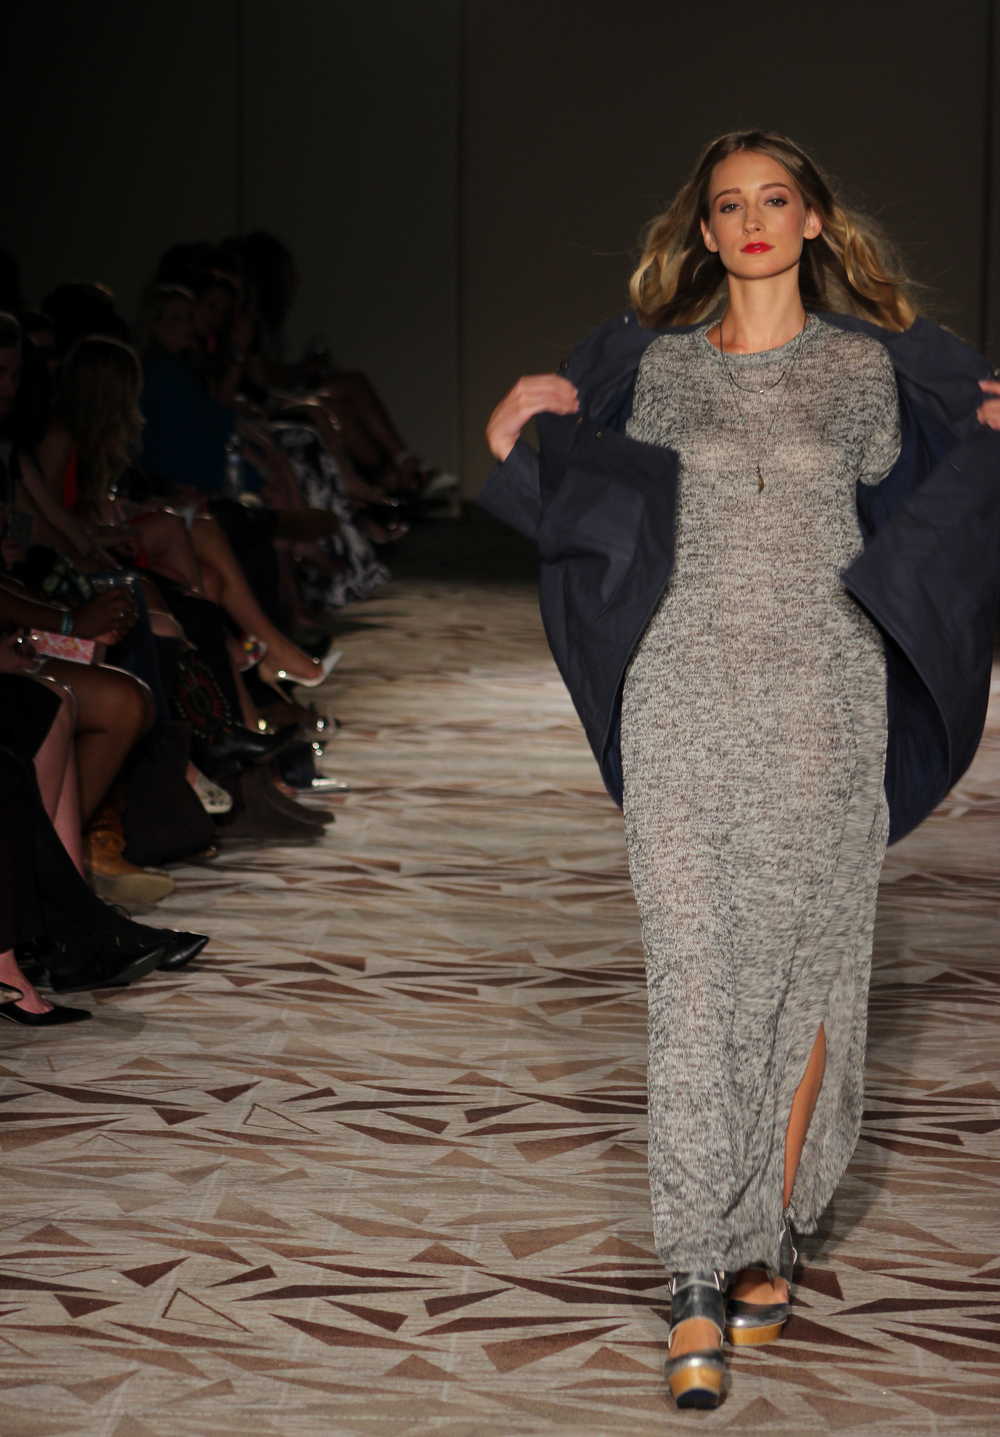 A model struts down the runway and shows off a grey knit dress from M.E. Shirley's collection. Photo by Miranda Chiechi.